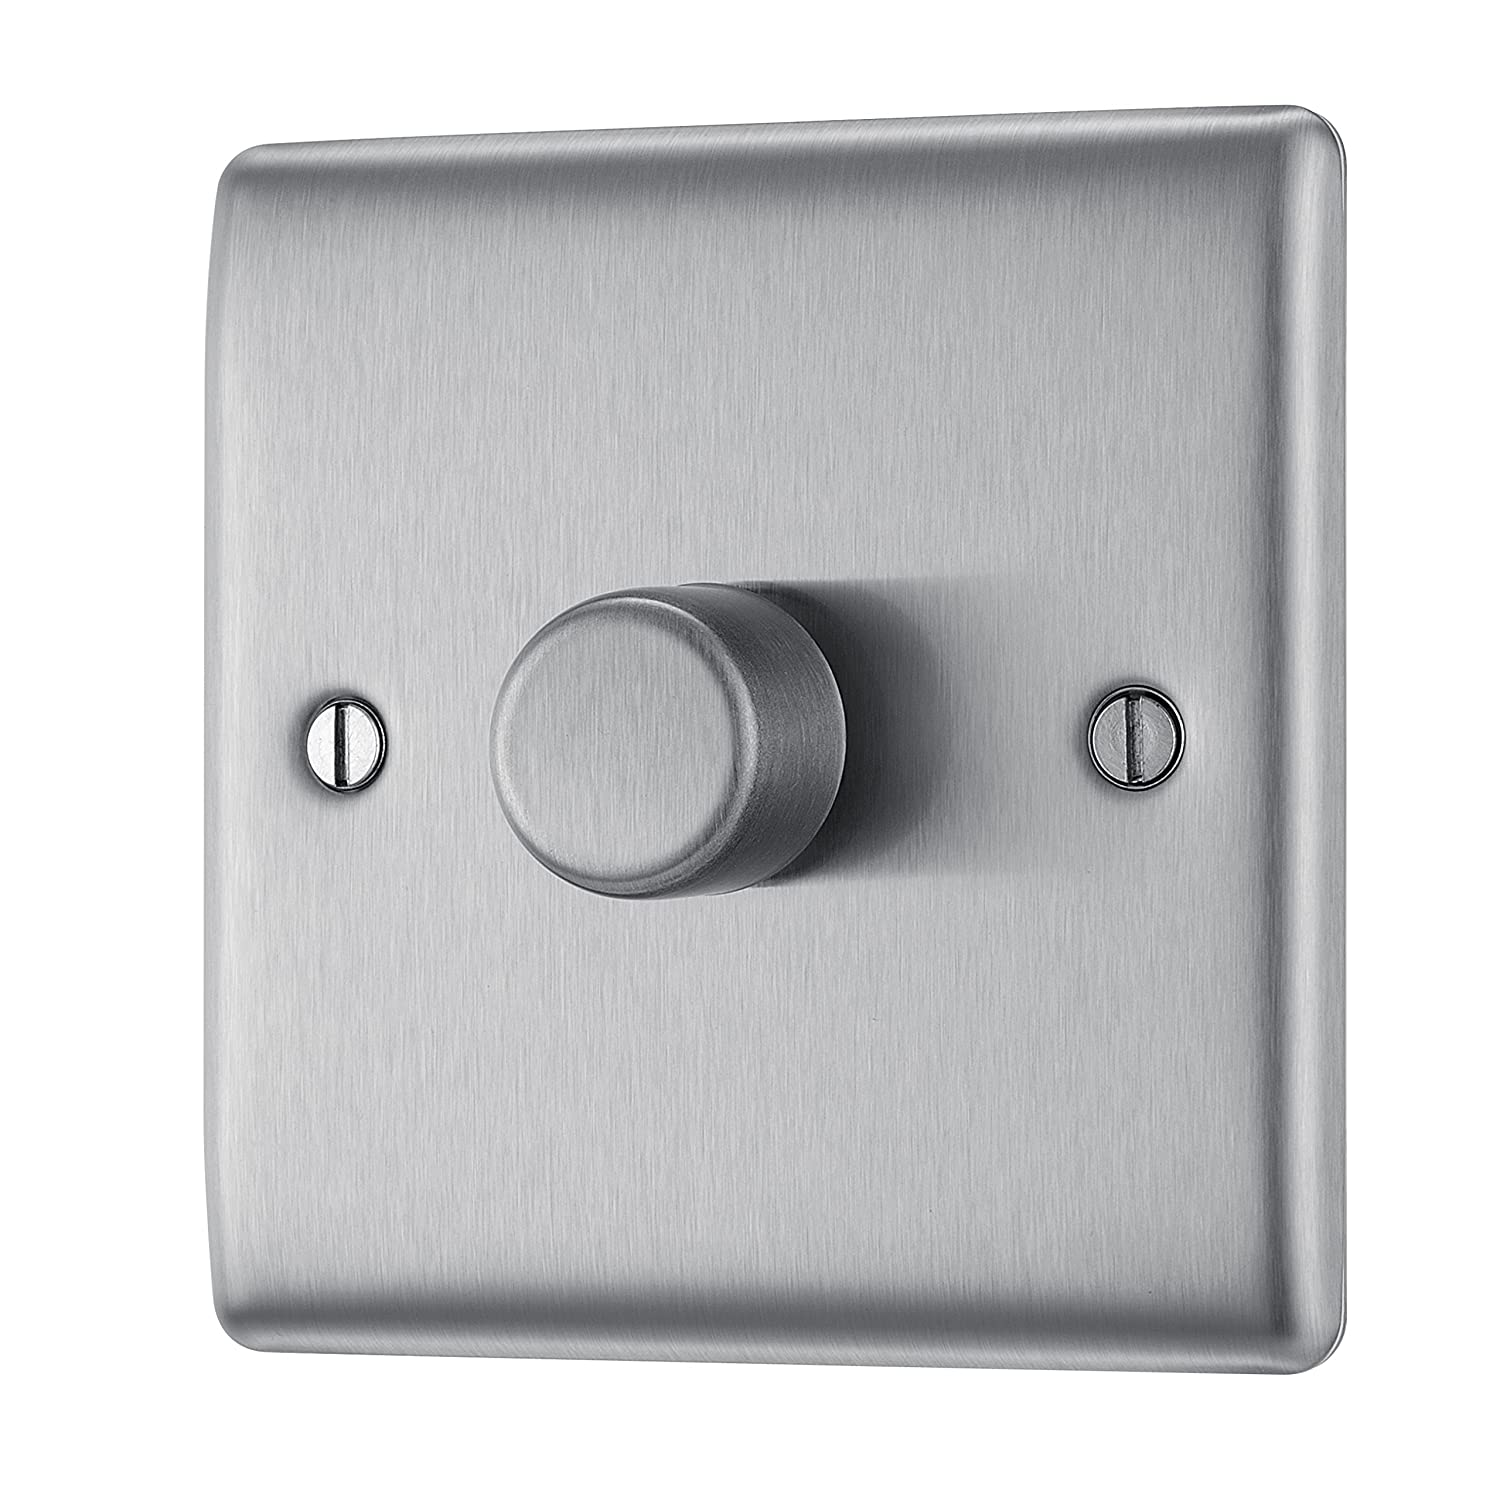 BG Electrical NBS81P 400W Single 2-Way Metal Brushed Steel Push On/ Off Dimmer Switch Nexus (Jiaxing) NBS81P-01